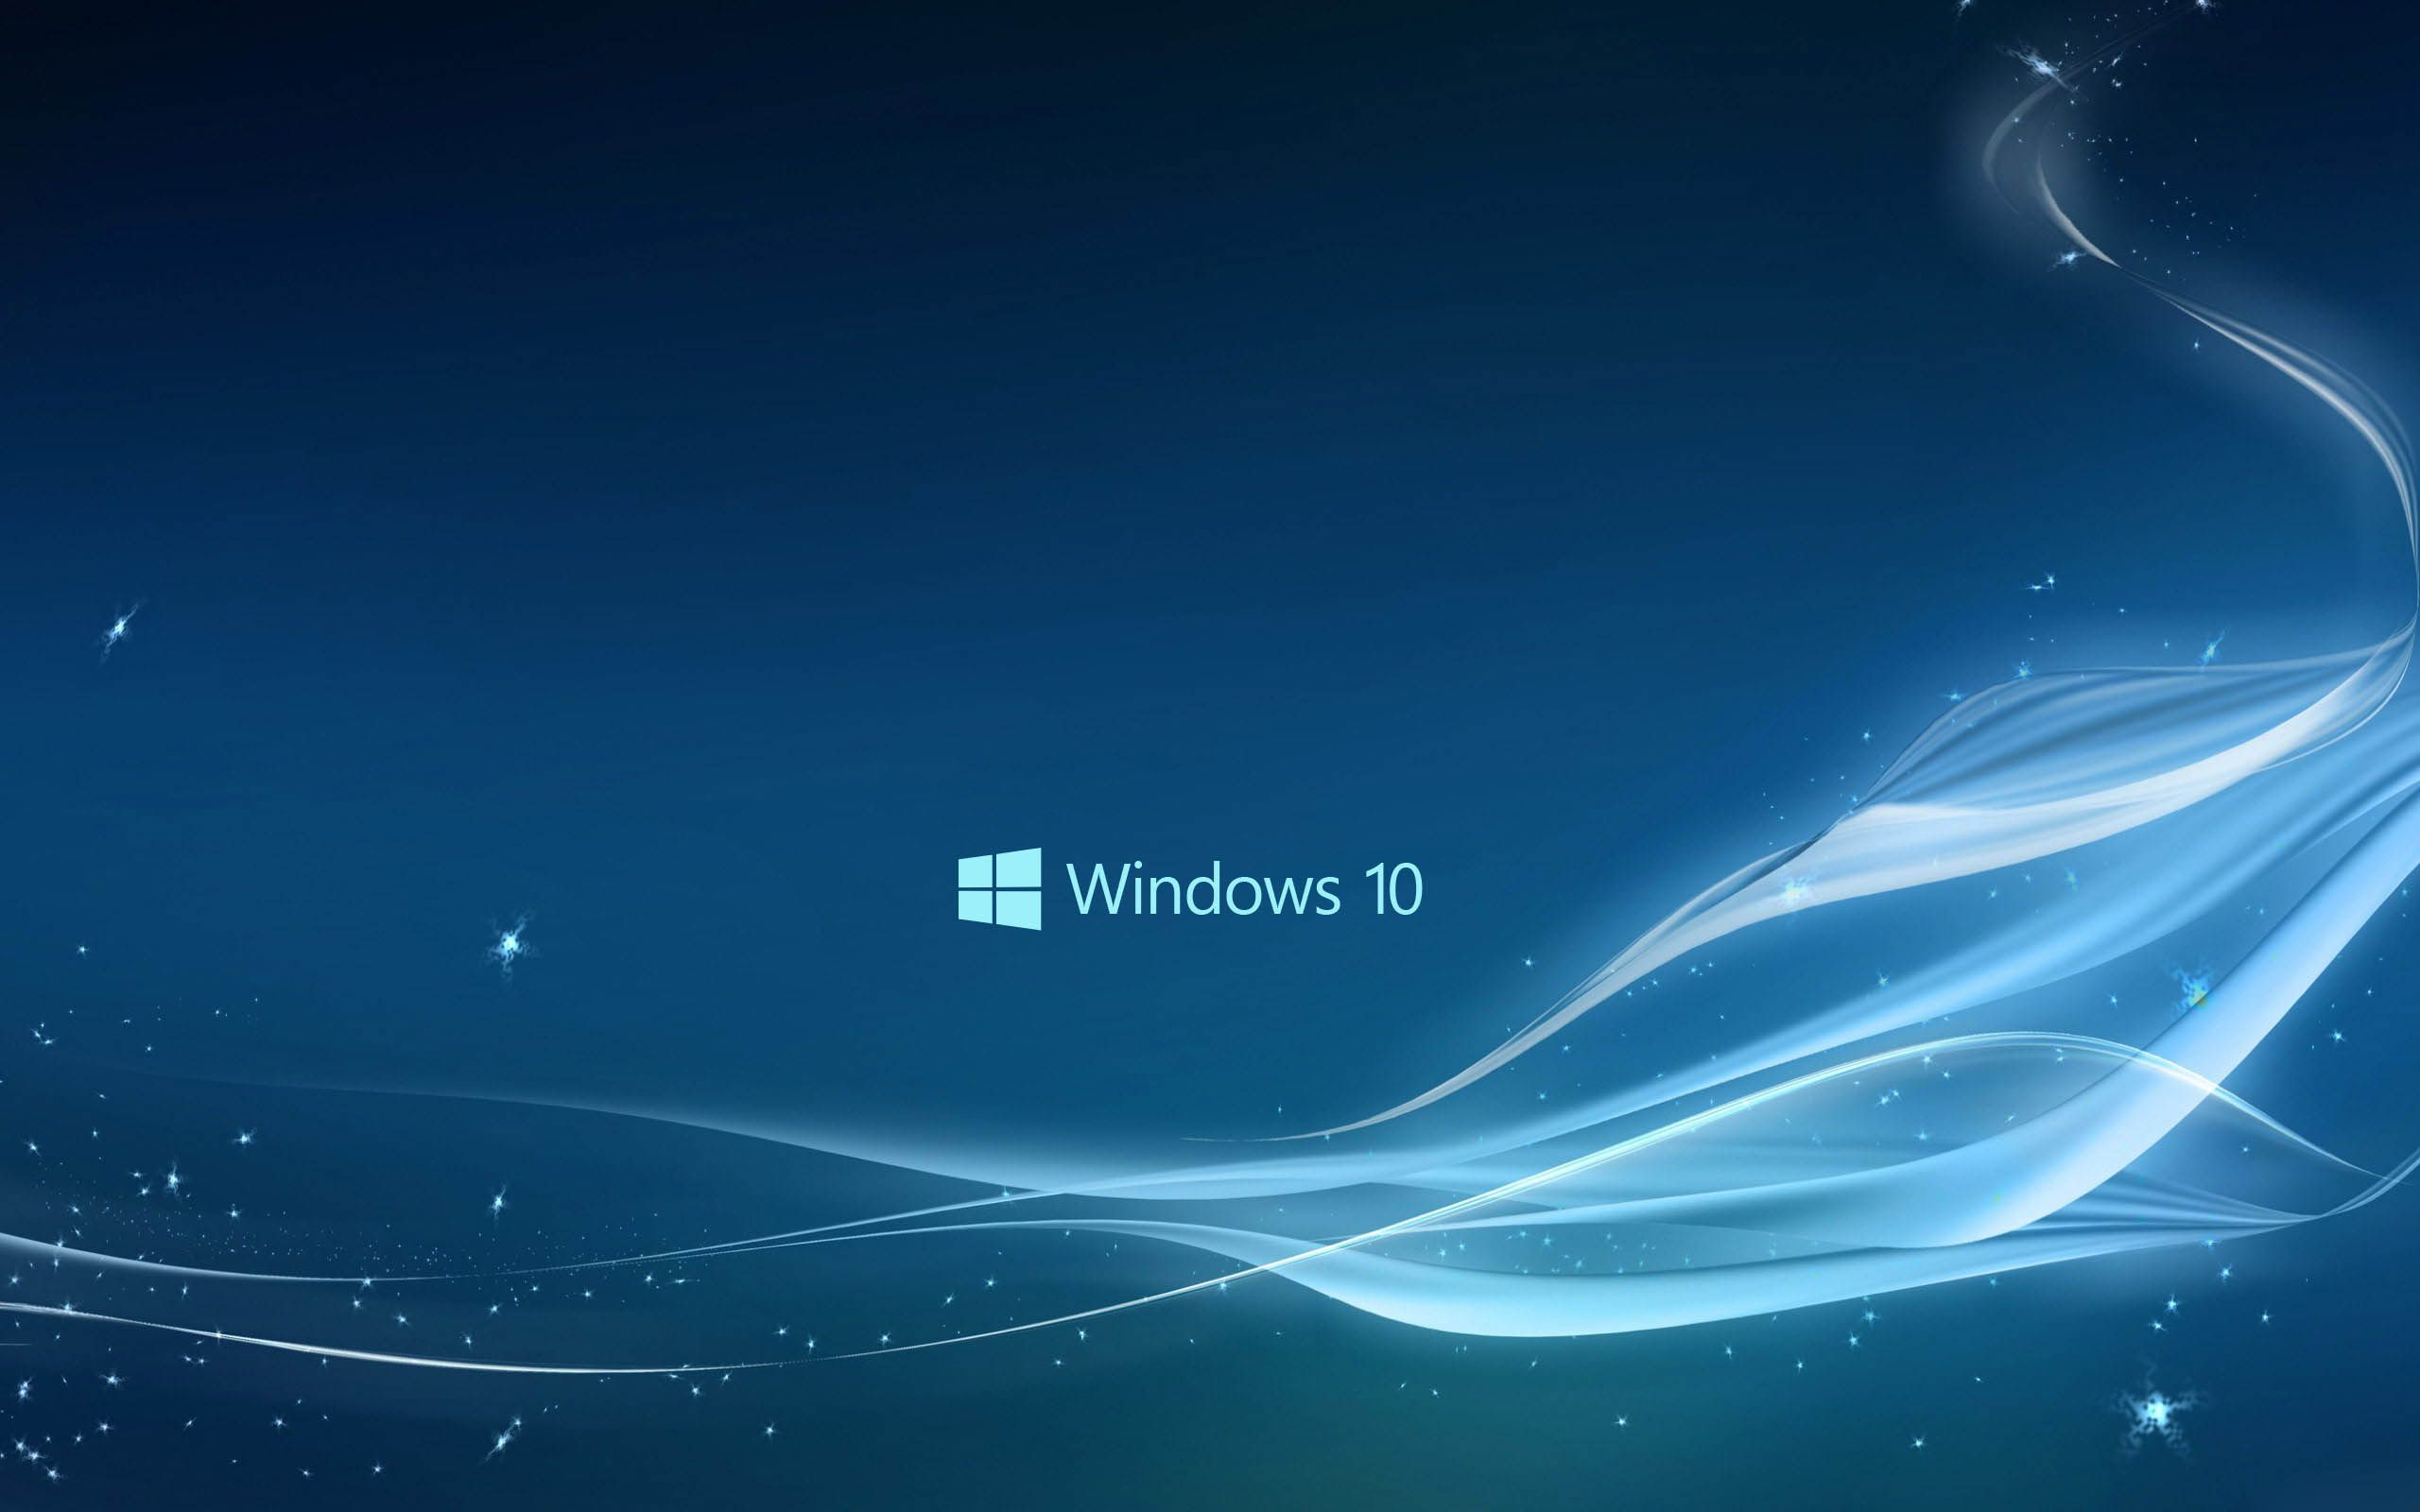 windows 10 wallpapers desktop httpwallucky comwindows 10